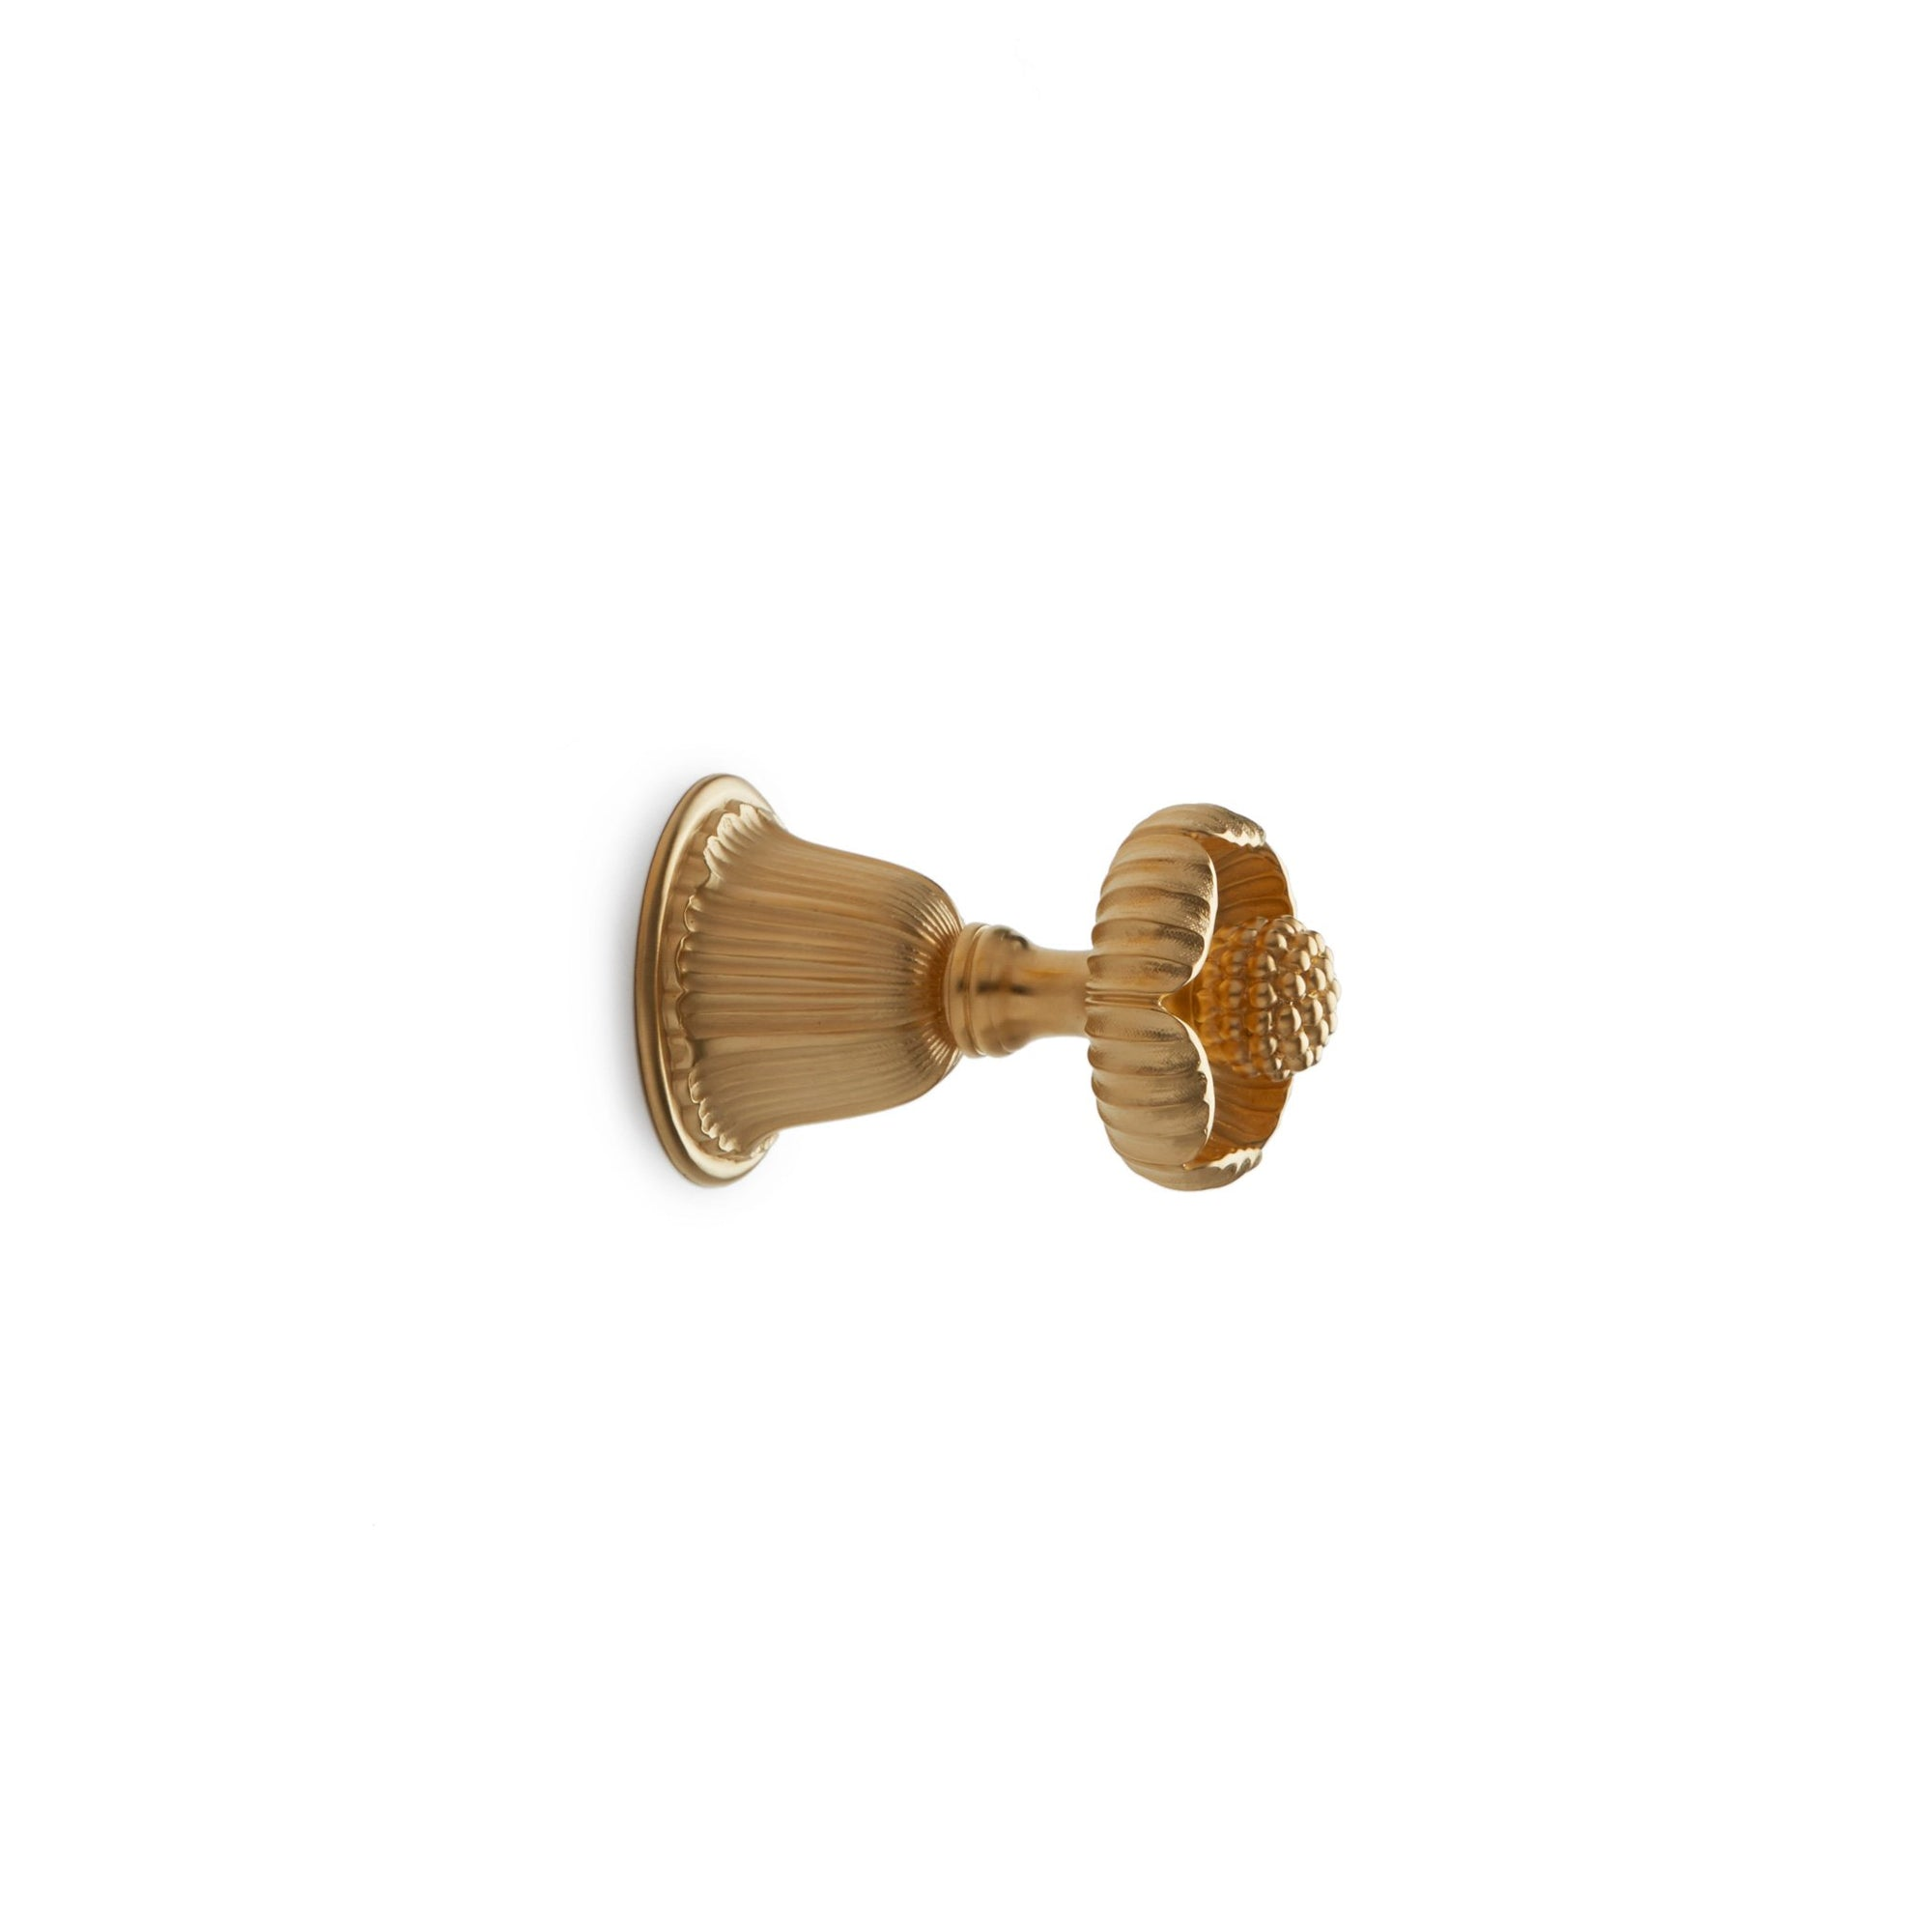 0934KB-ESC-GP Sherle Wagner International Shell Knob Volume Control and Diverter Trim in Gold Plate metal finish